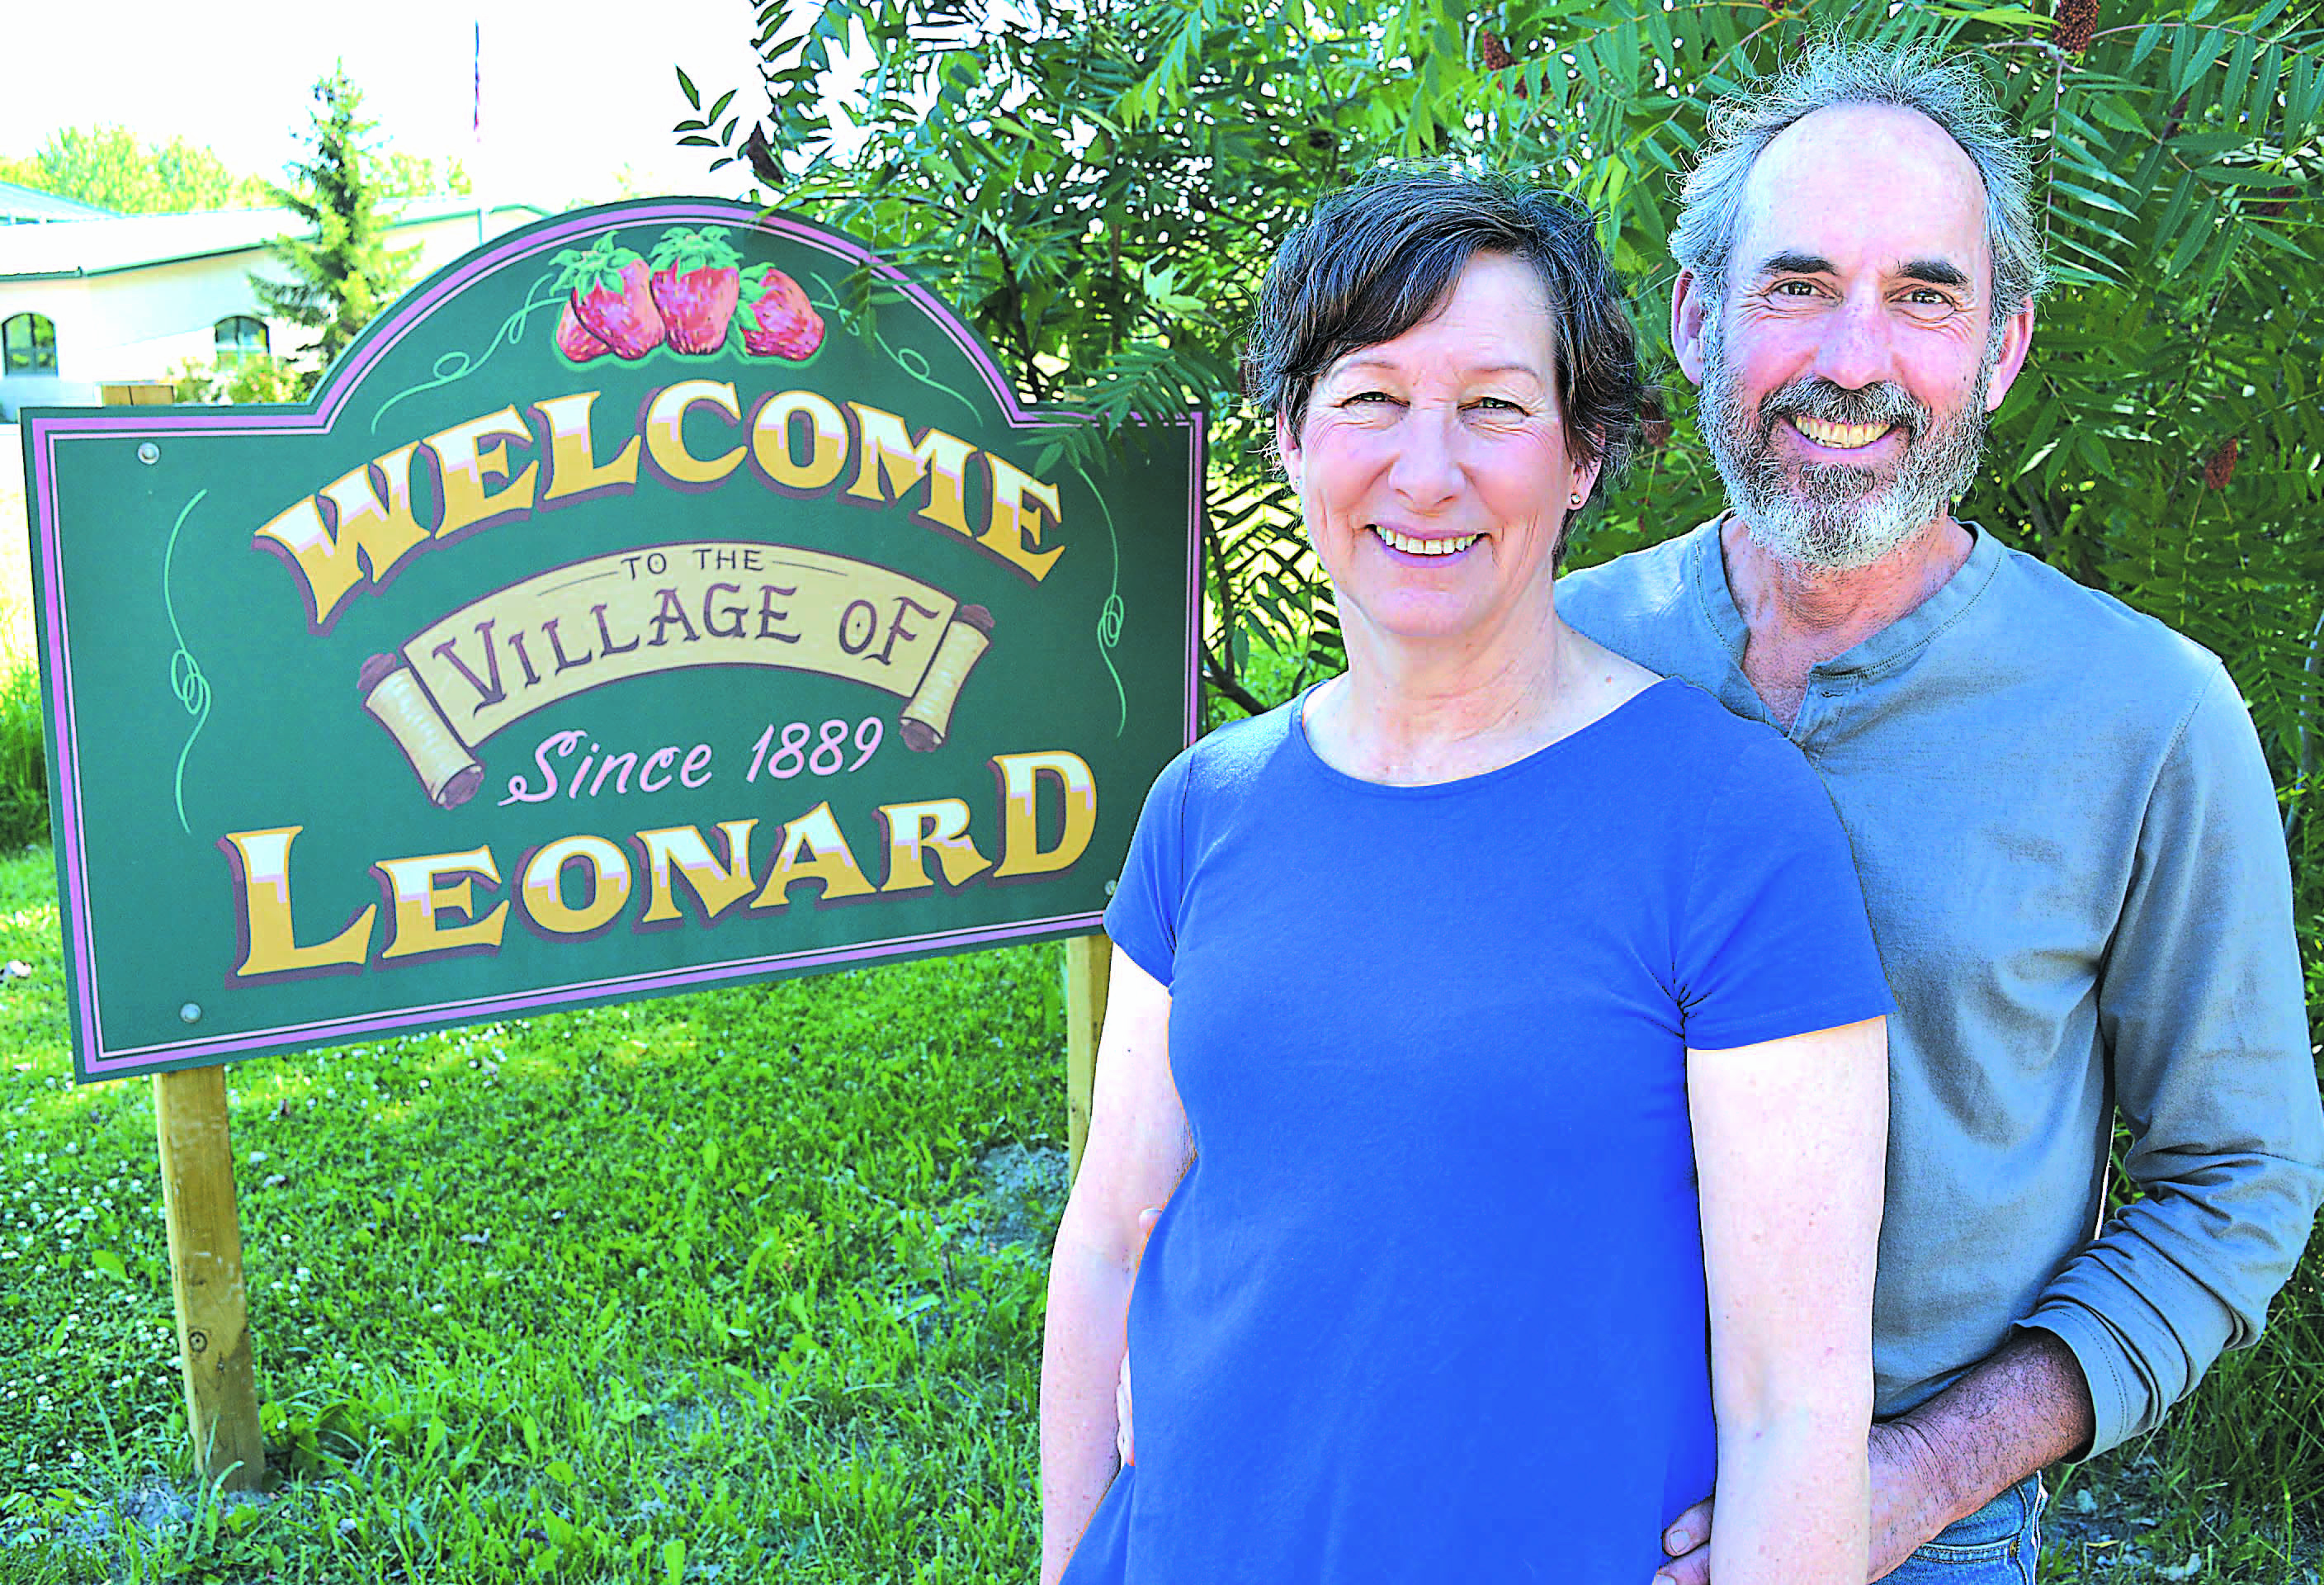 John and Lynn Boehmer will lead the Strawberry Festival parade in Leonard on July 21. Photo by C.J. Carnacchio.